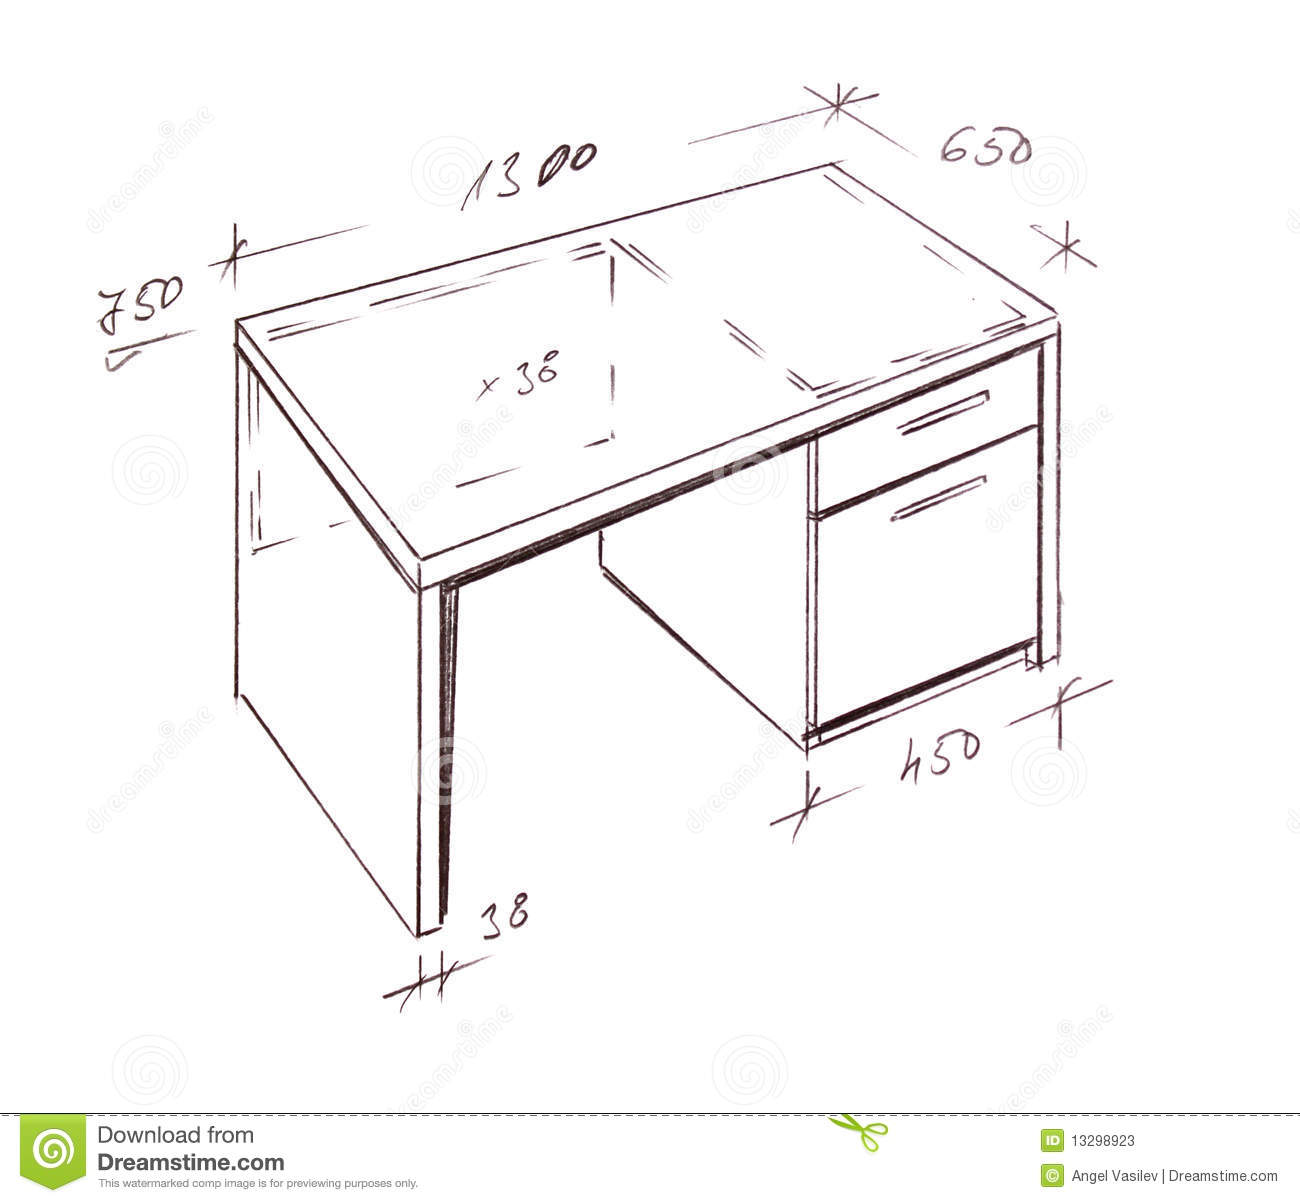 Design Desk Drawing Drawn Freehand Furniture Hand Illustration Interior